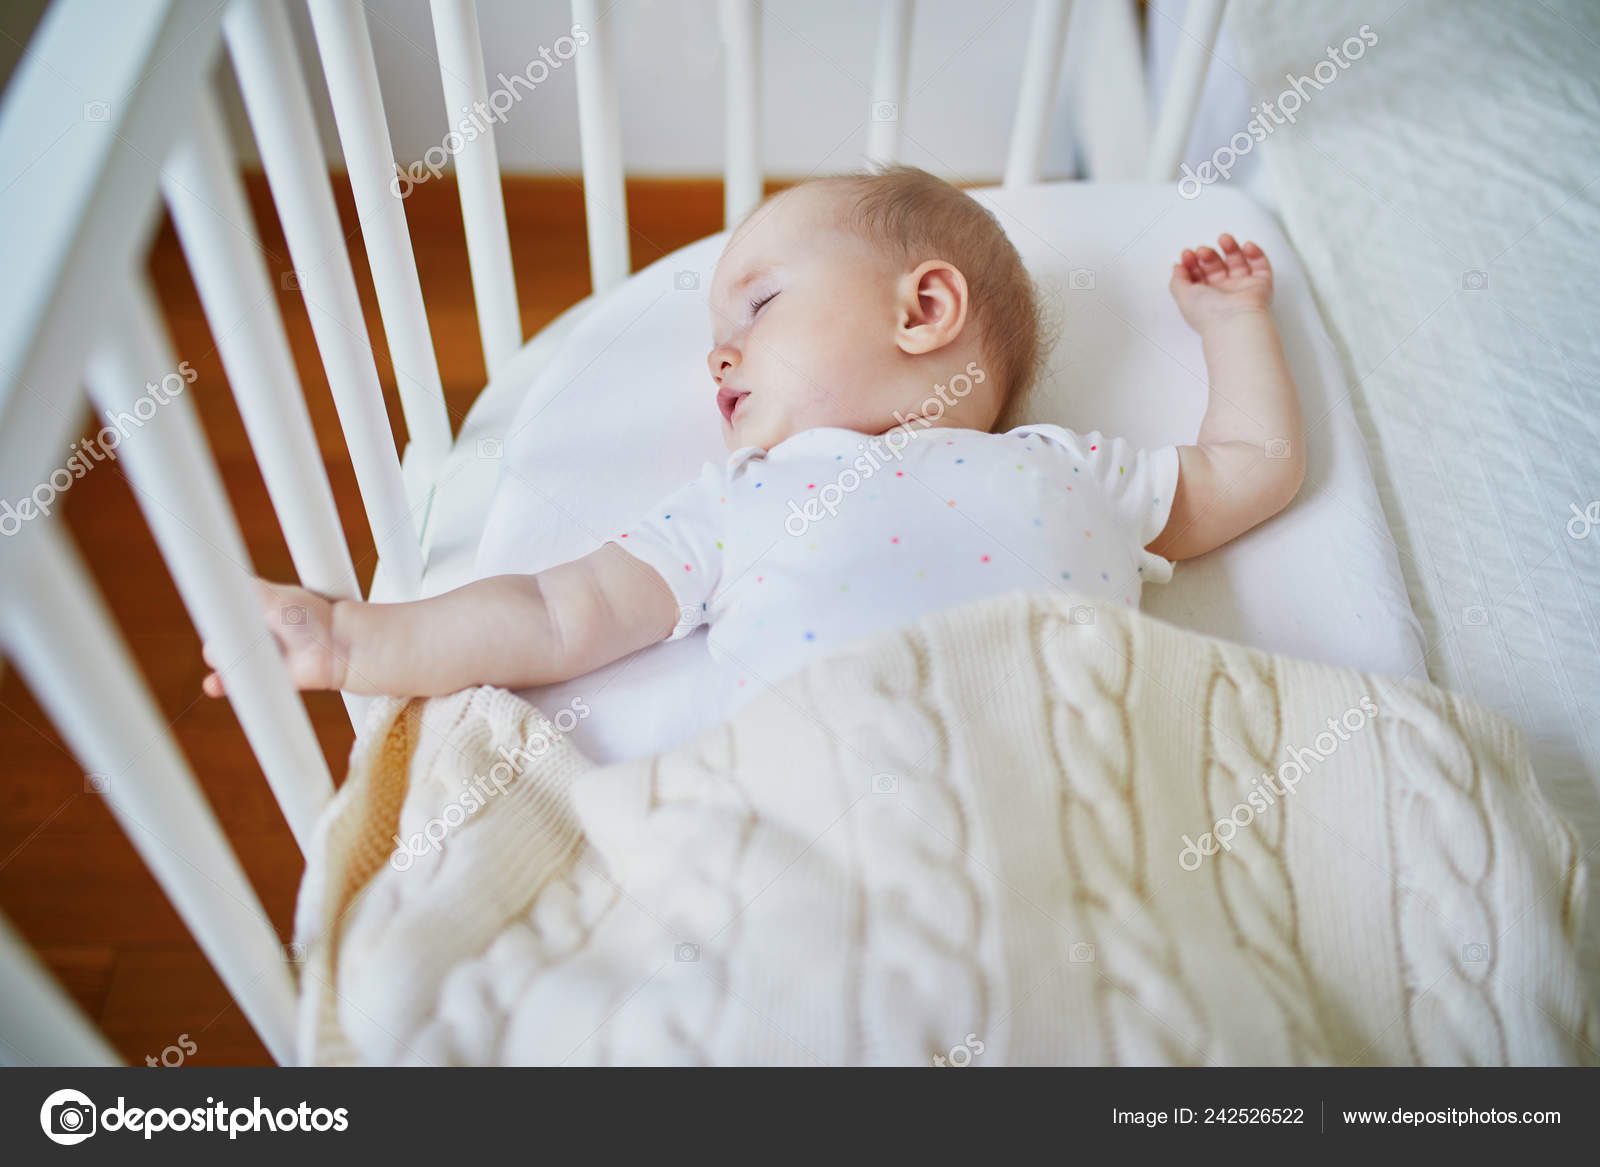 Baby Cots That Attach To Beds Adorable Baby Girl Sleeping Sleeper Crib Attached Parents